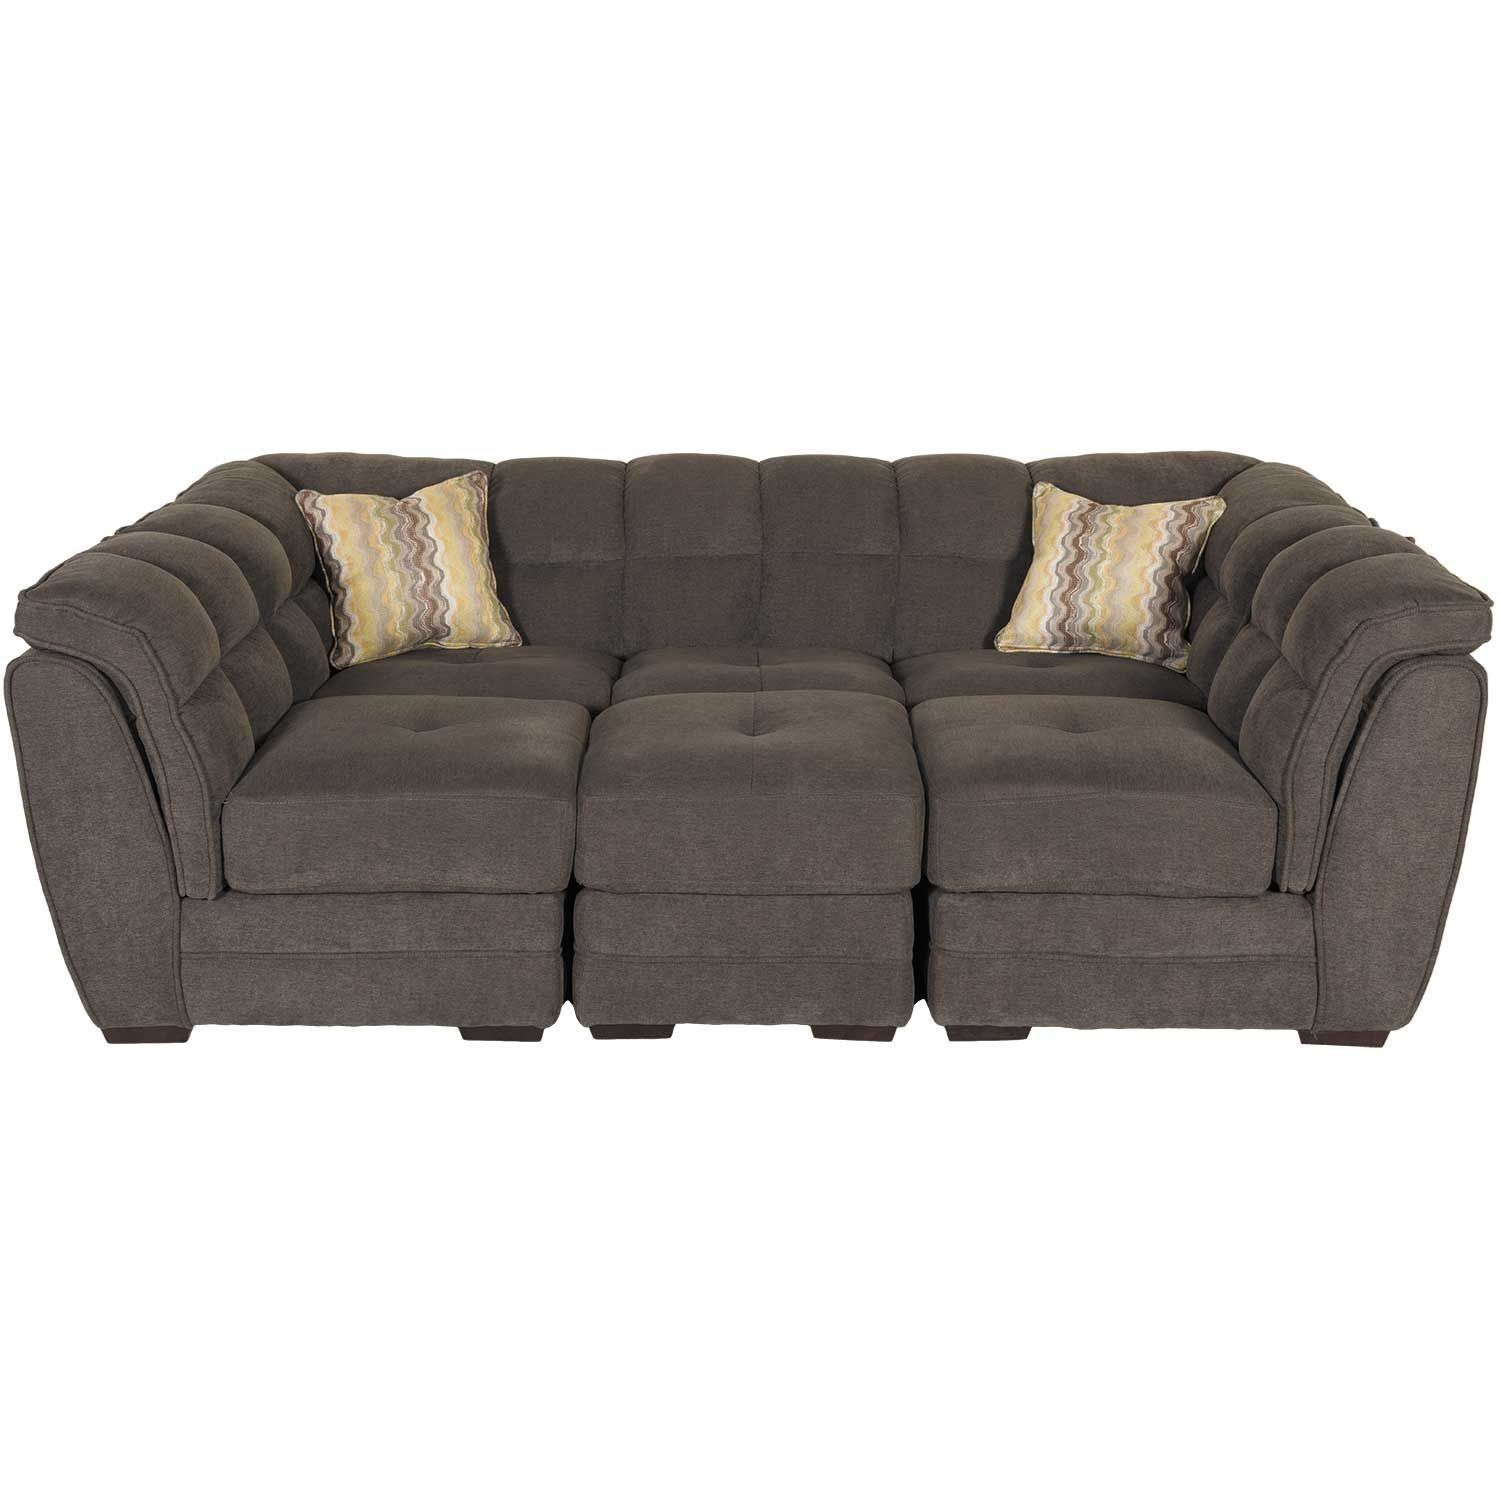 Clio Gray 4 Piece Pit Sectional My House Pit Sectional Pit